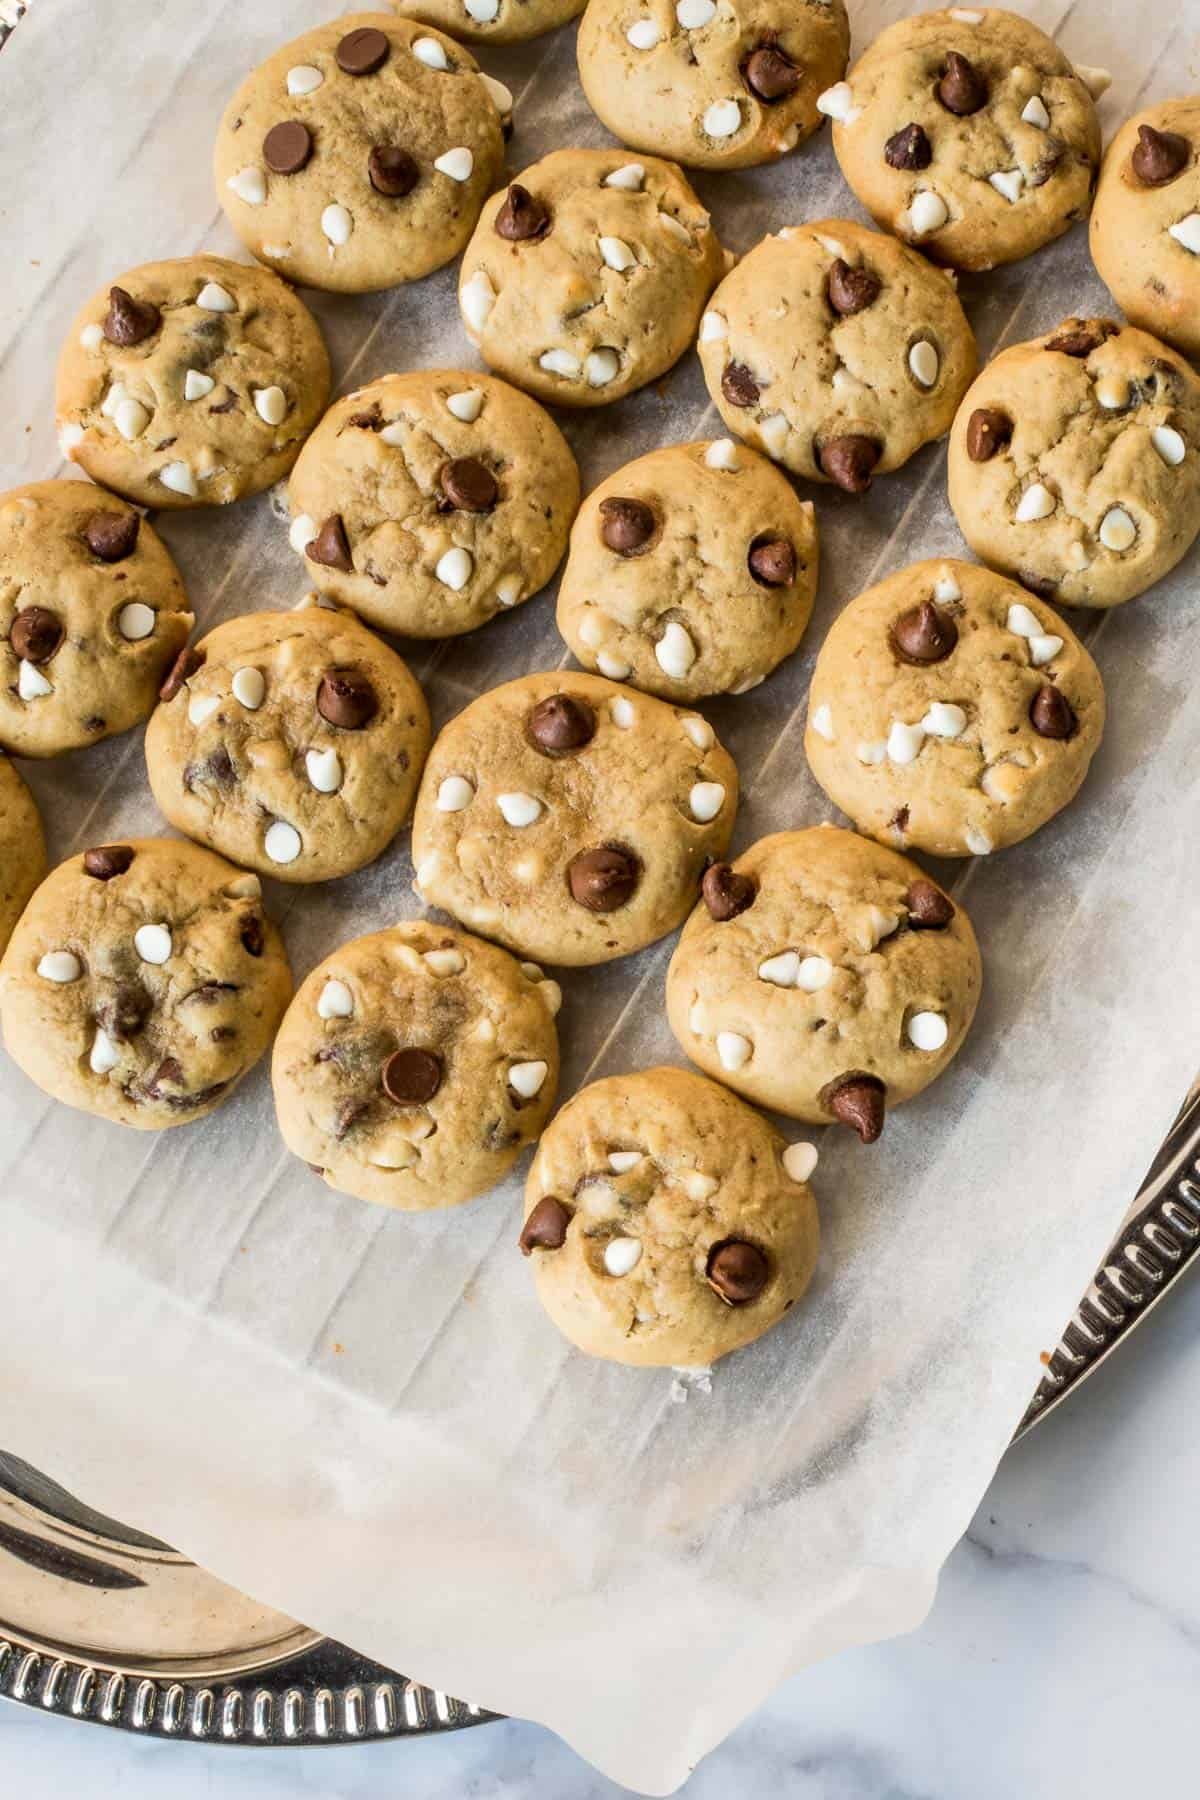 Chocolate chip cookies on a parchment lined wire rack